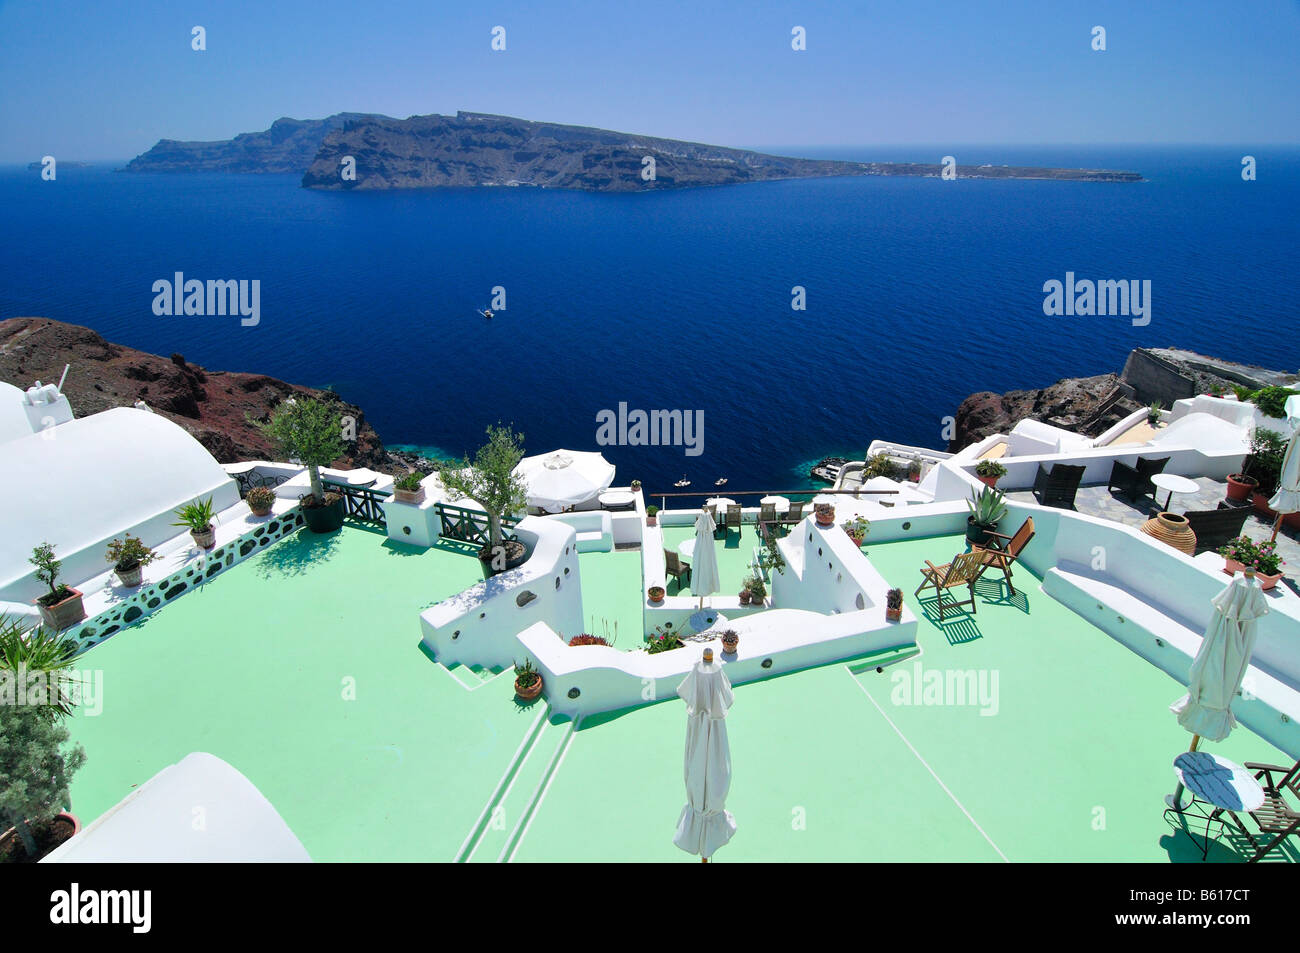 Sun terrace with a green floor and sunshades in front of the blue sea and the volcanic island of Nea Kameni, Oia, - Stock Image